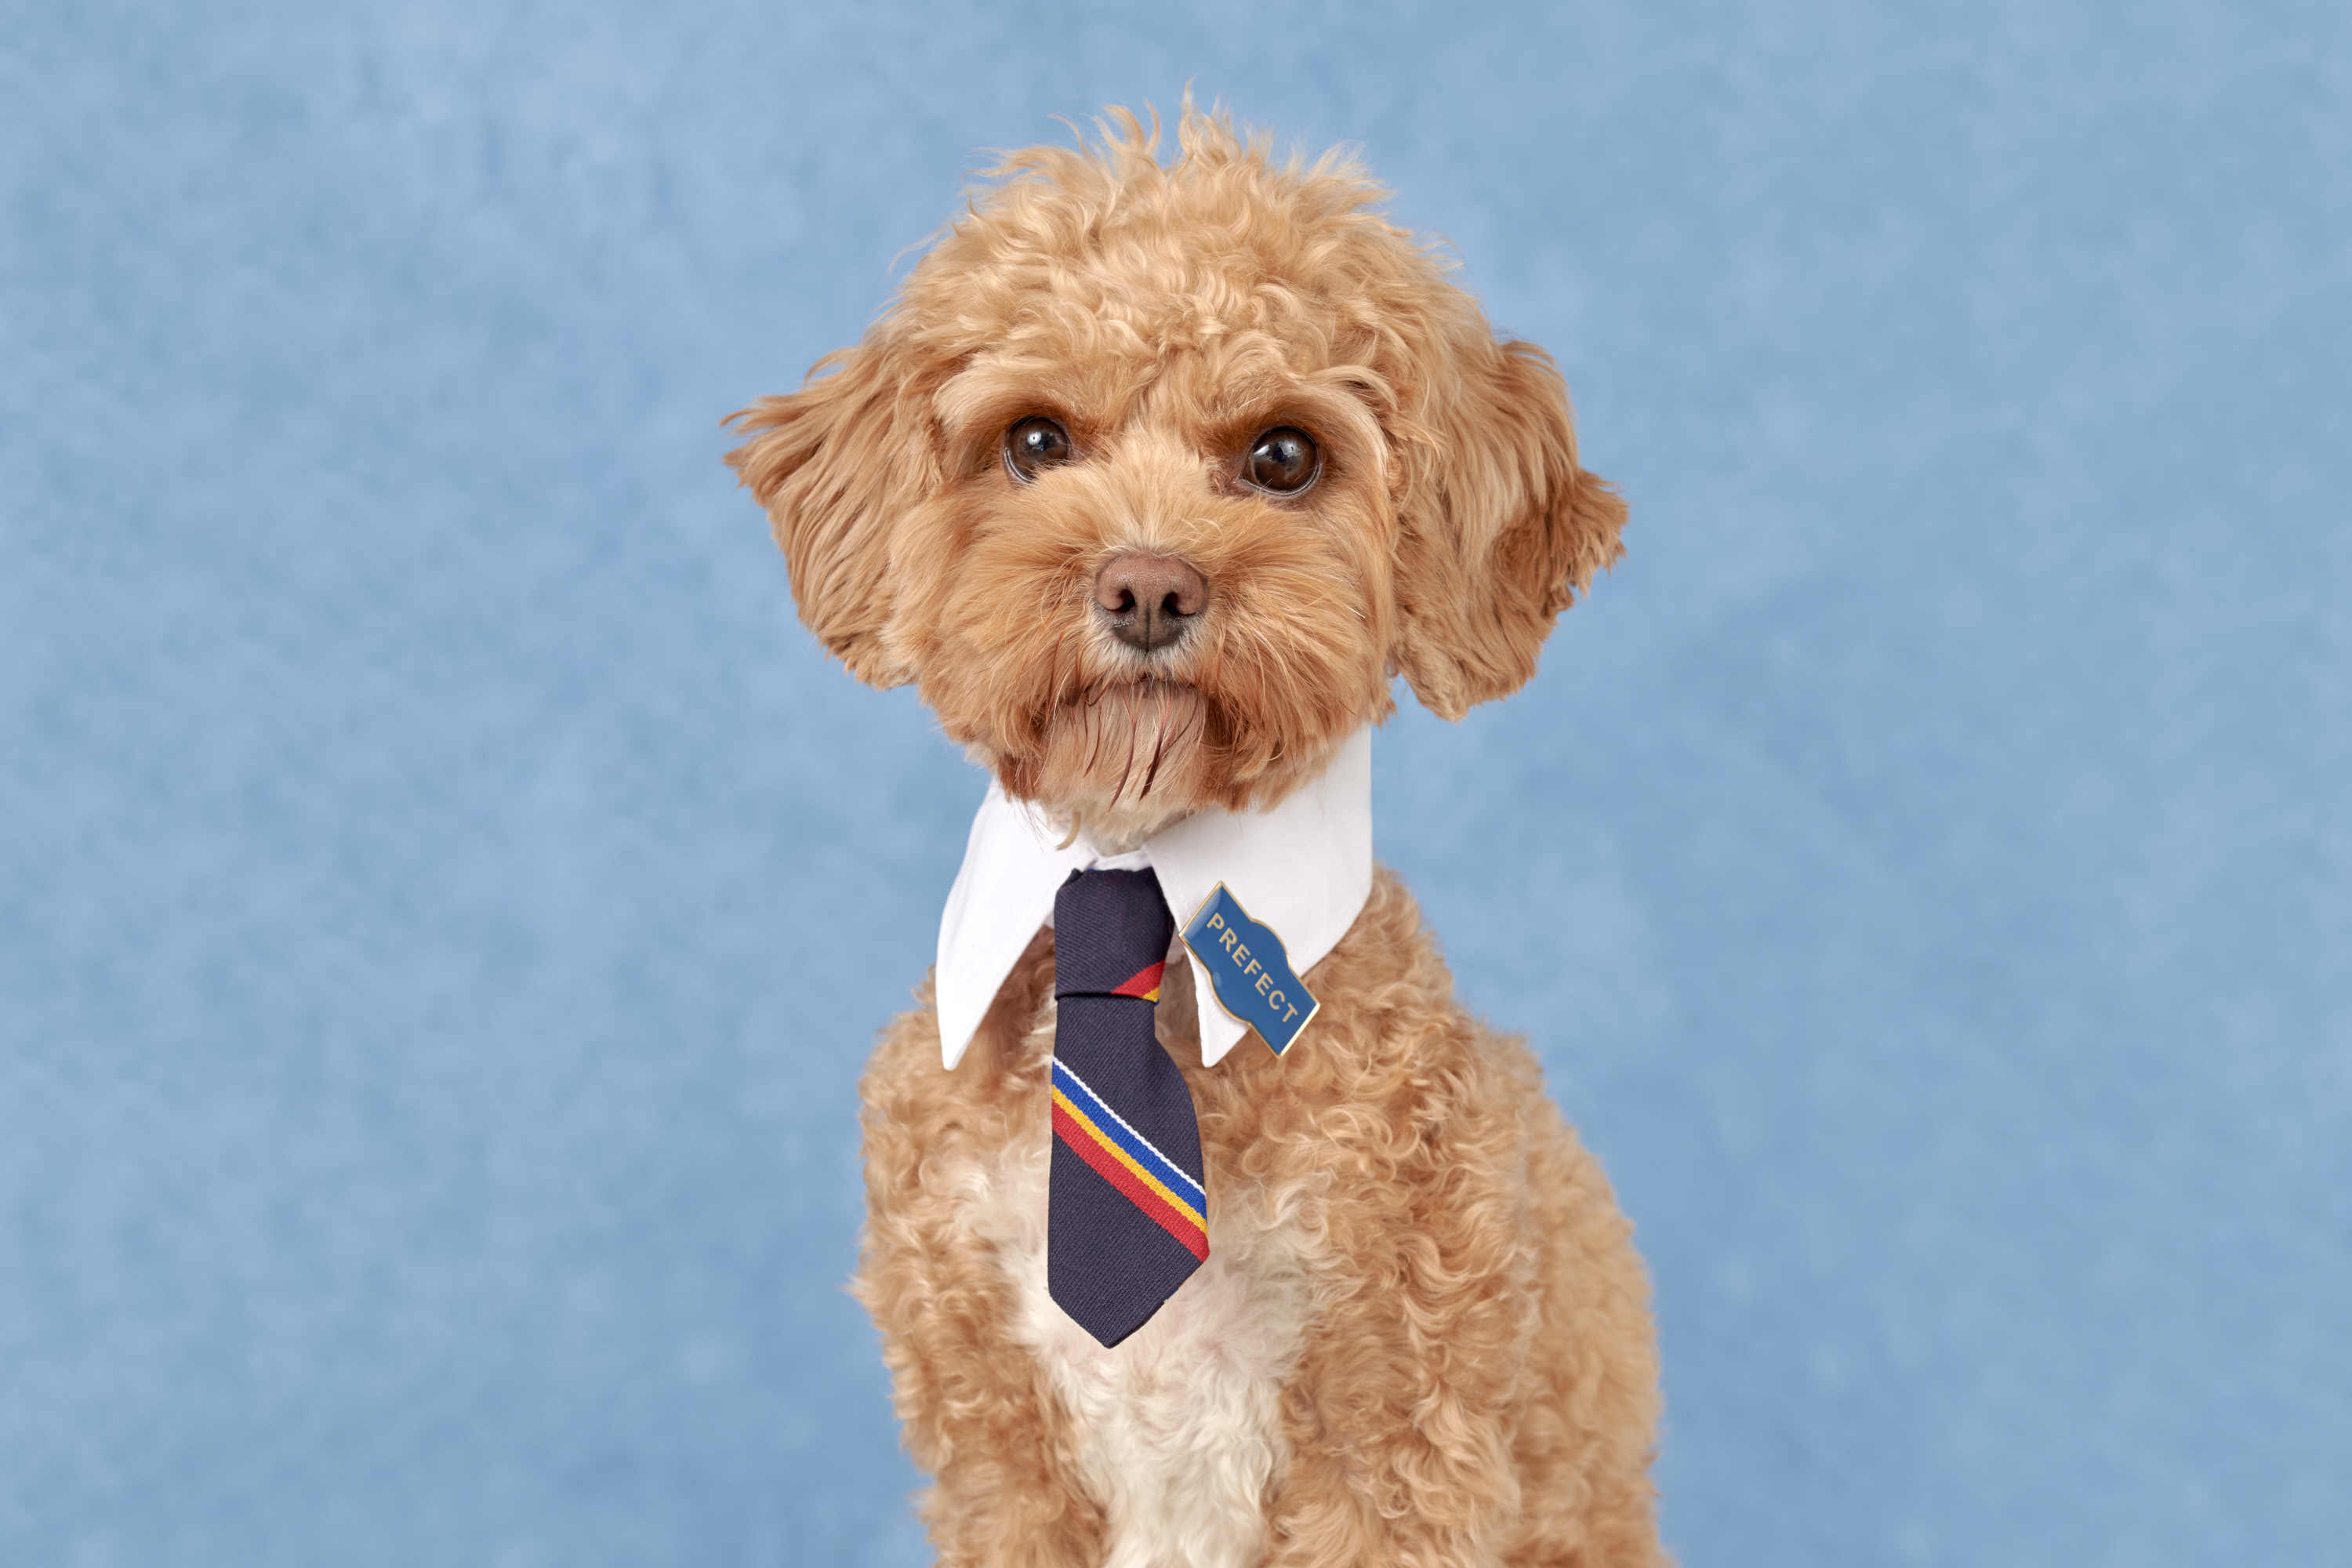 A beautiful, golden poodle-cross dog wearing a tie